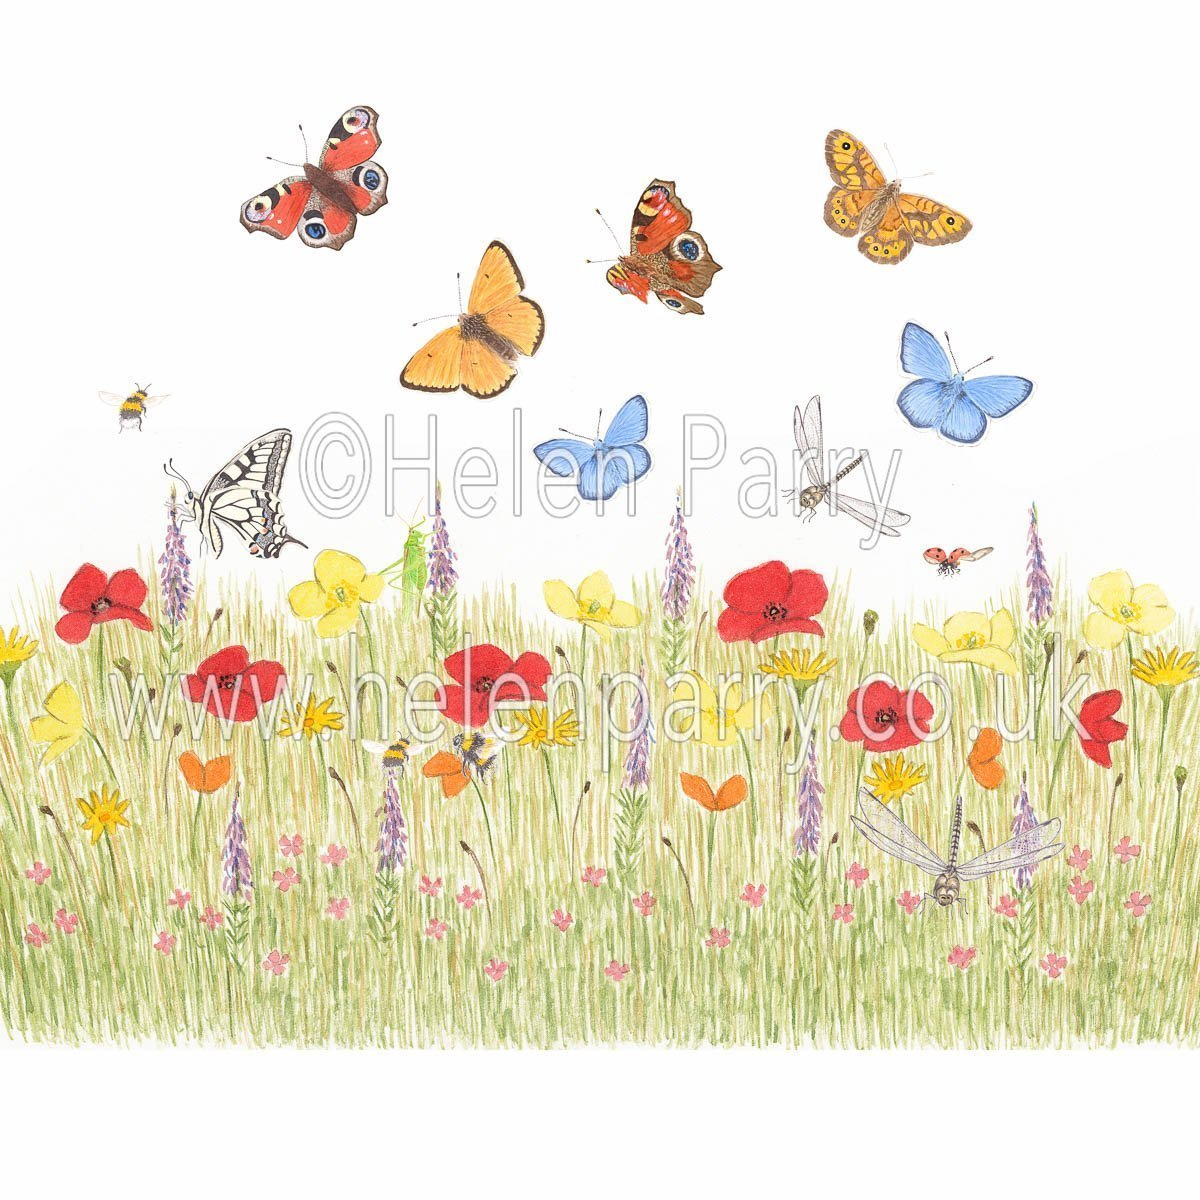 framed greeting card poppy meadow with daises, purple toadflax, butterflies, bees, dragonfly, ladybirds